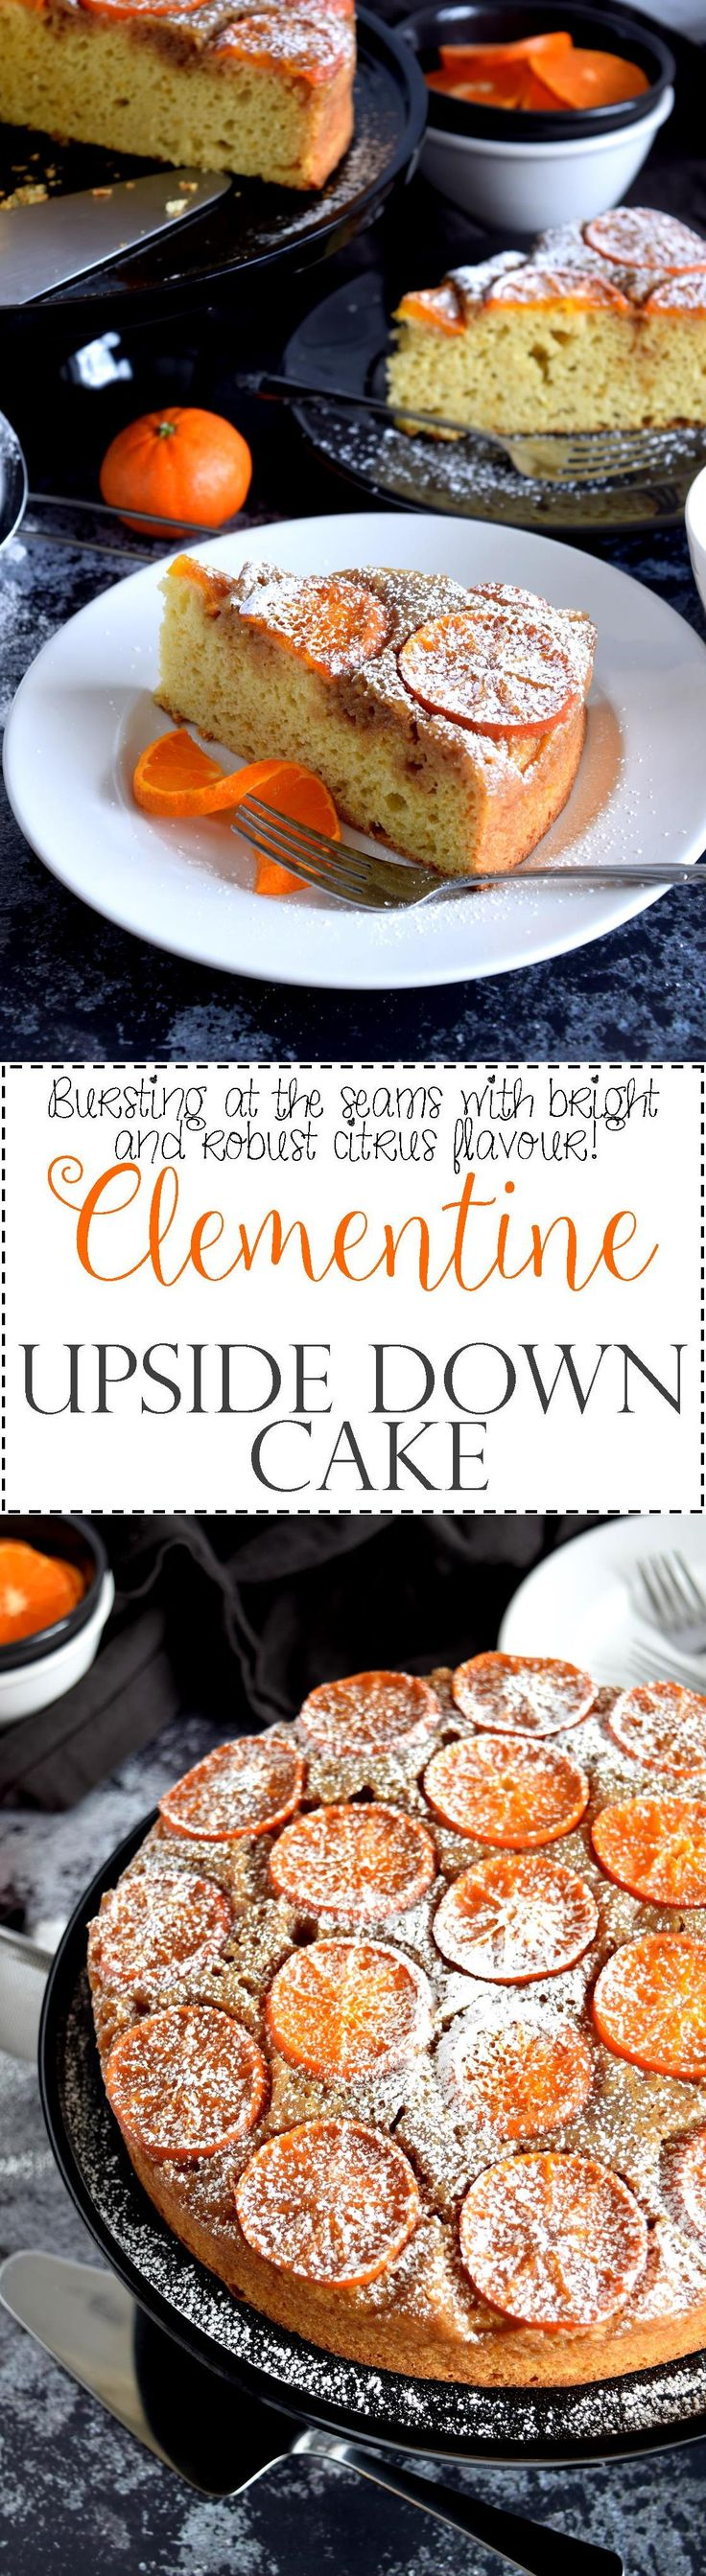 Clementine Upside Down Cake - Cakes do not need frosting and fancy decorations to be pretty and presentable.  Clementine Upside Down Cake is very citrus-y, very easy to make, very rustic, and very gorgeous!  A great dessert option for a dinner party!